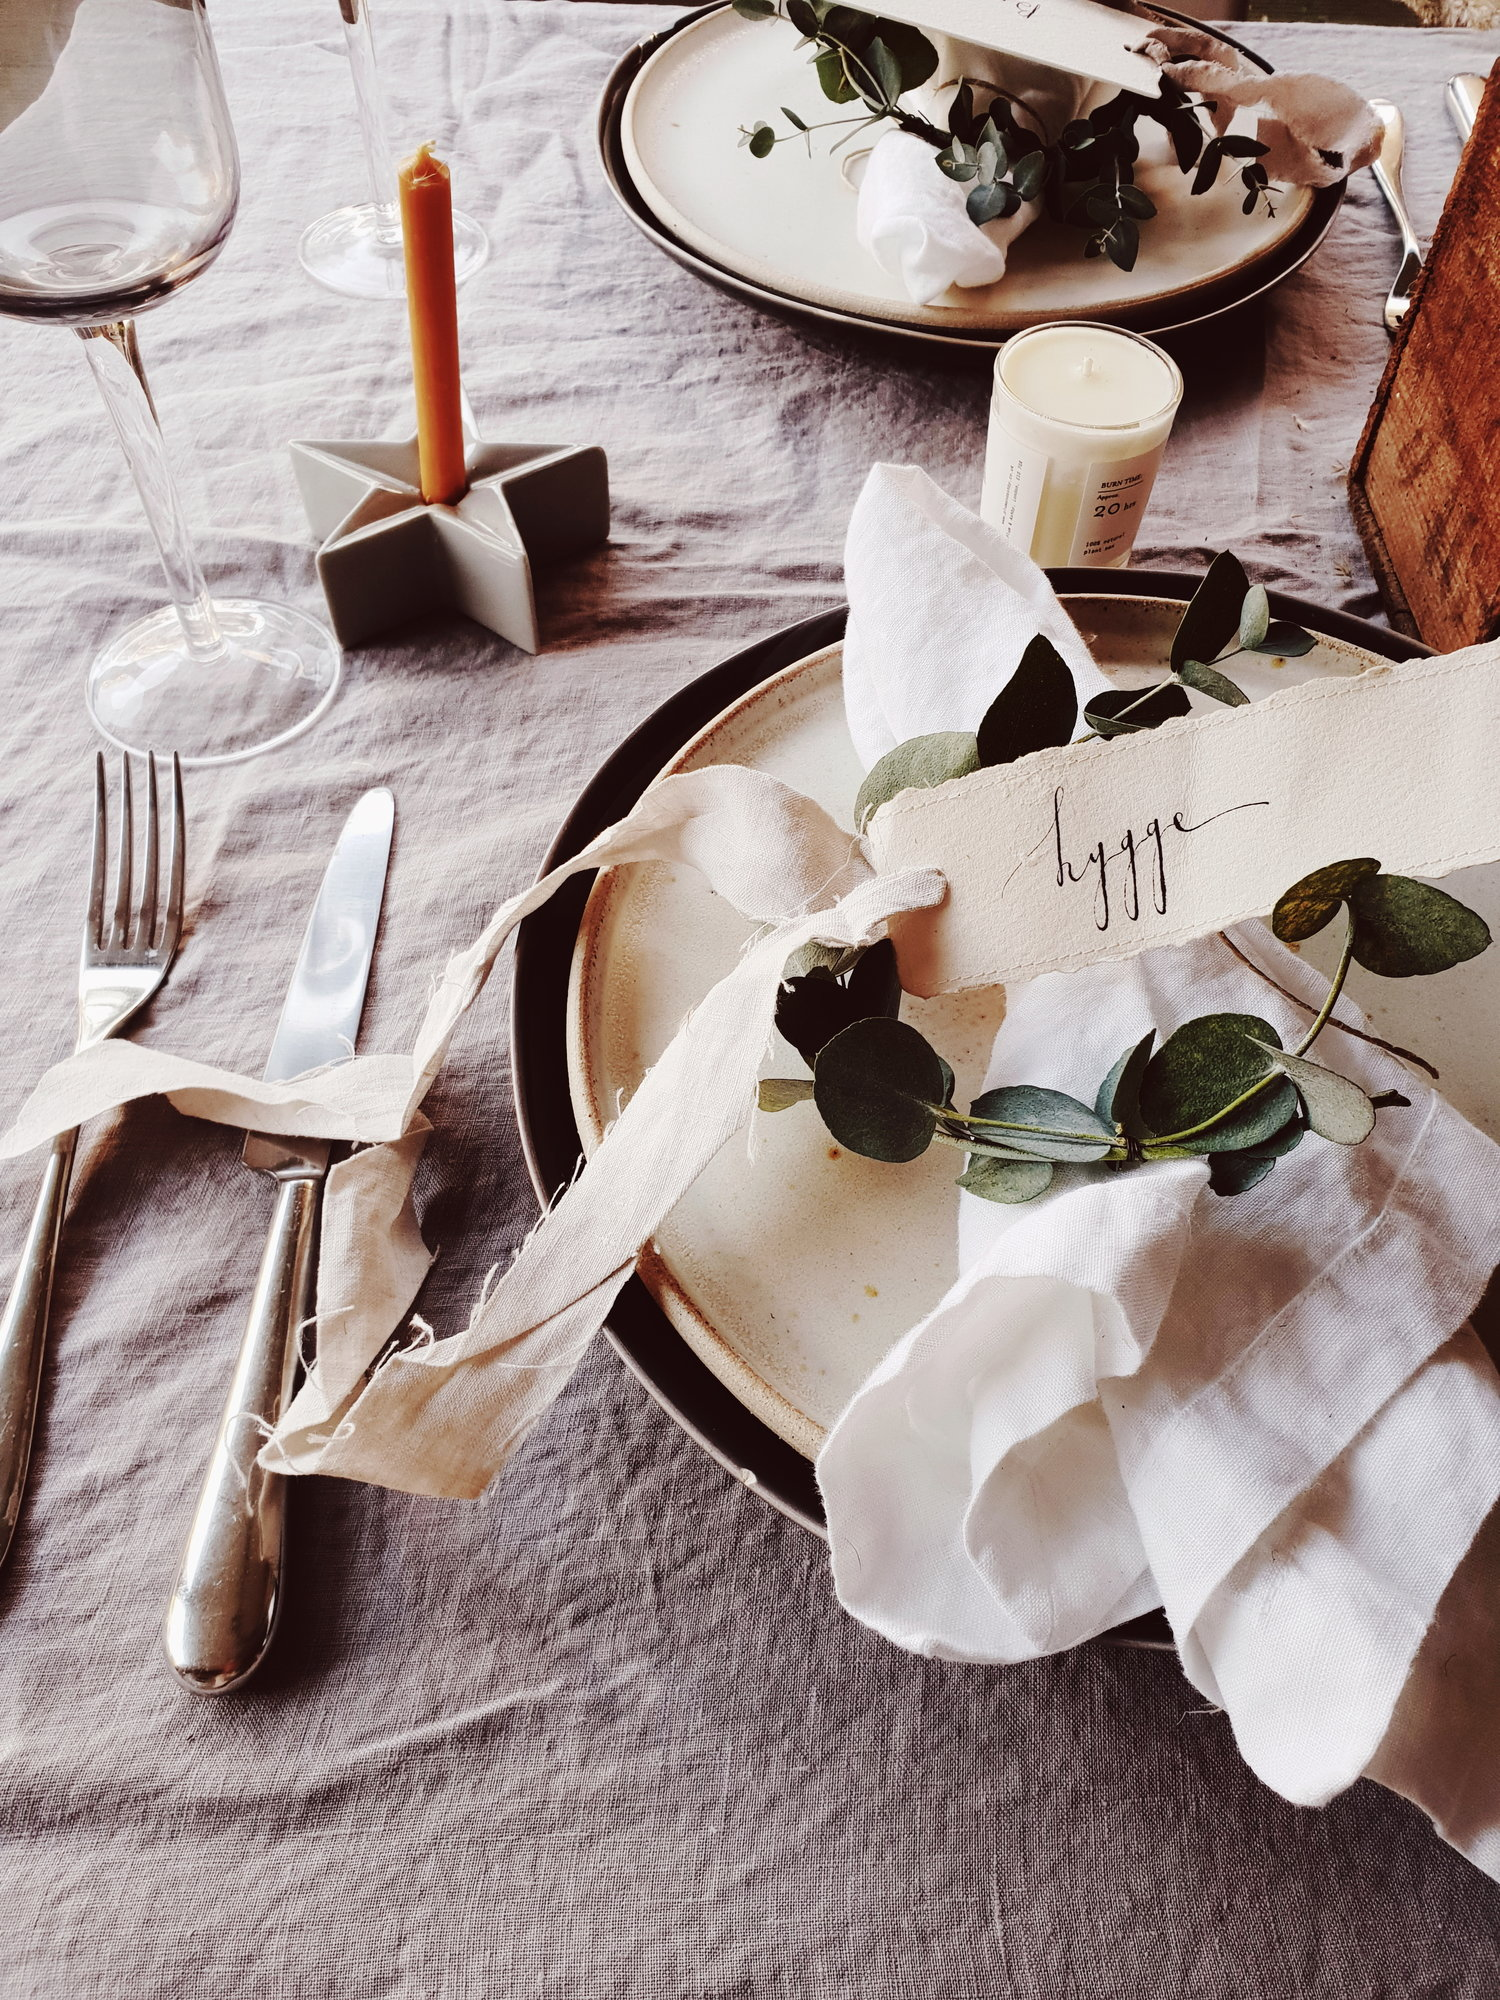 Add a personal touch to your table with these gorgeous handwritten labels from Oysterbridge Co